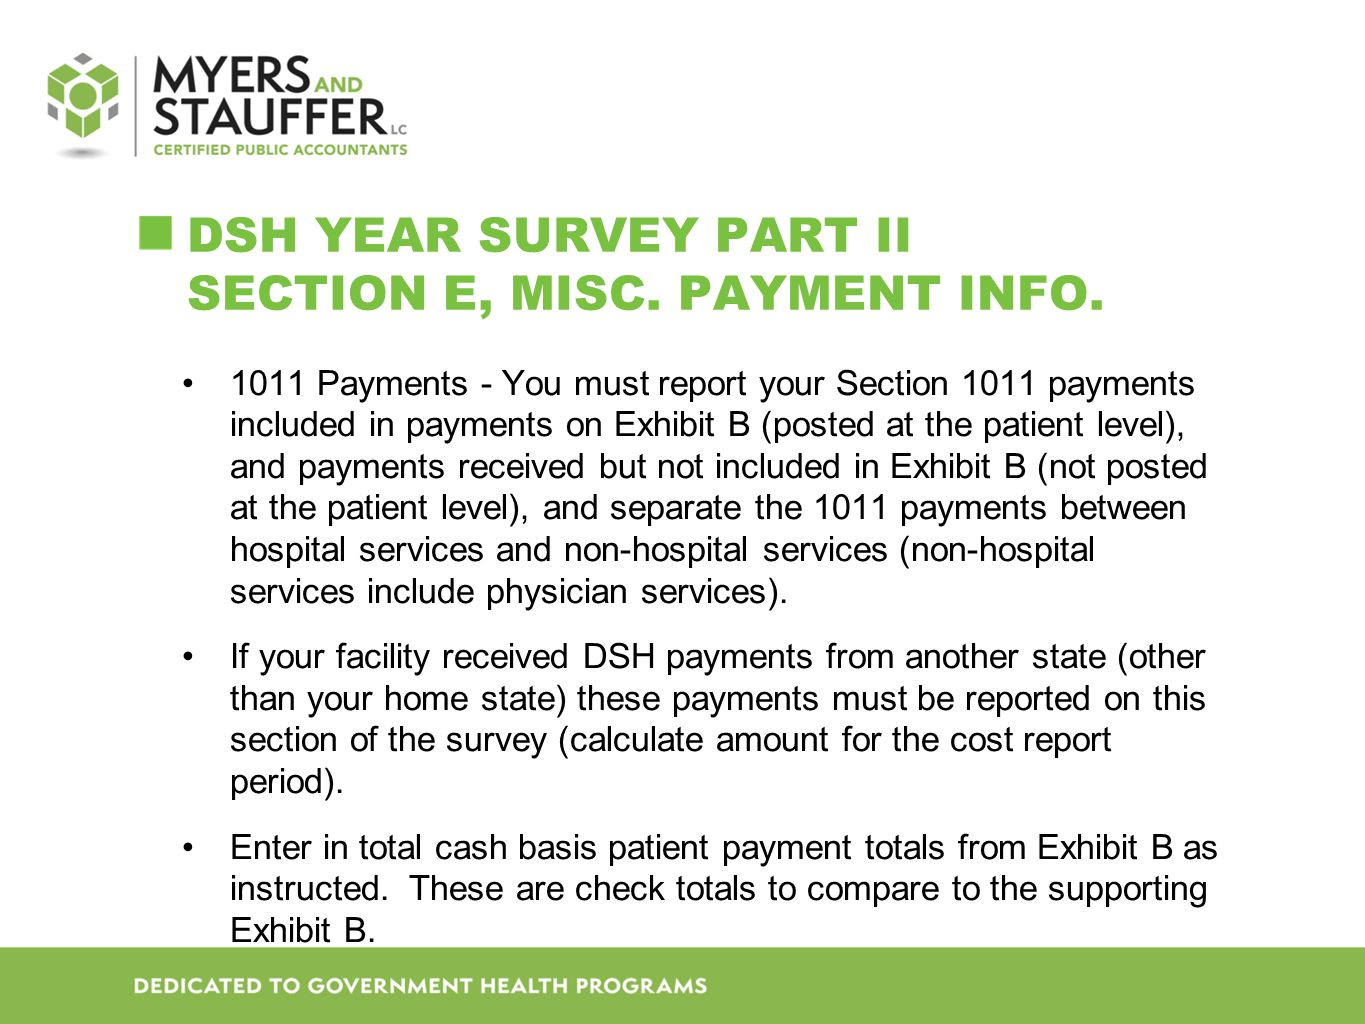 DSH YEAR SURVEY PART II SECTION E, MISC.PAYMENT INFO.